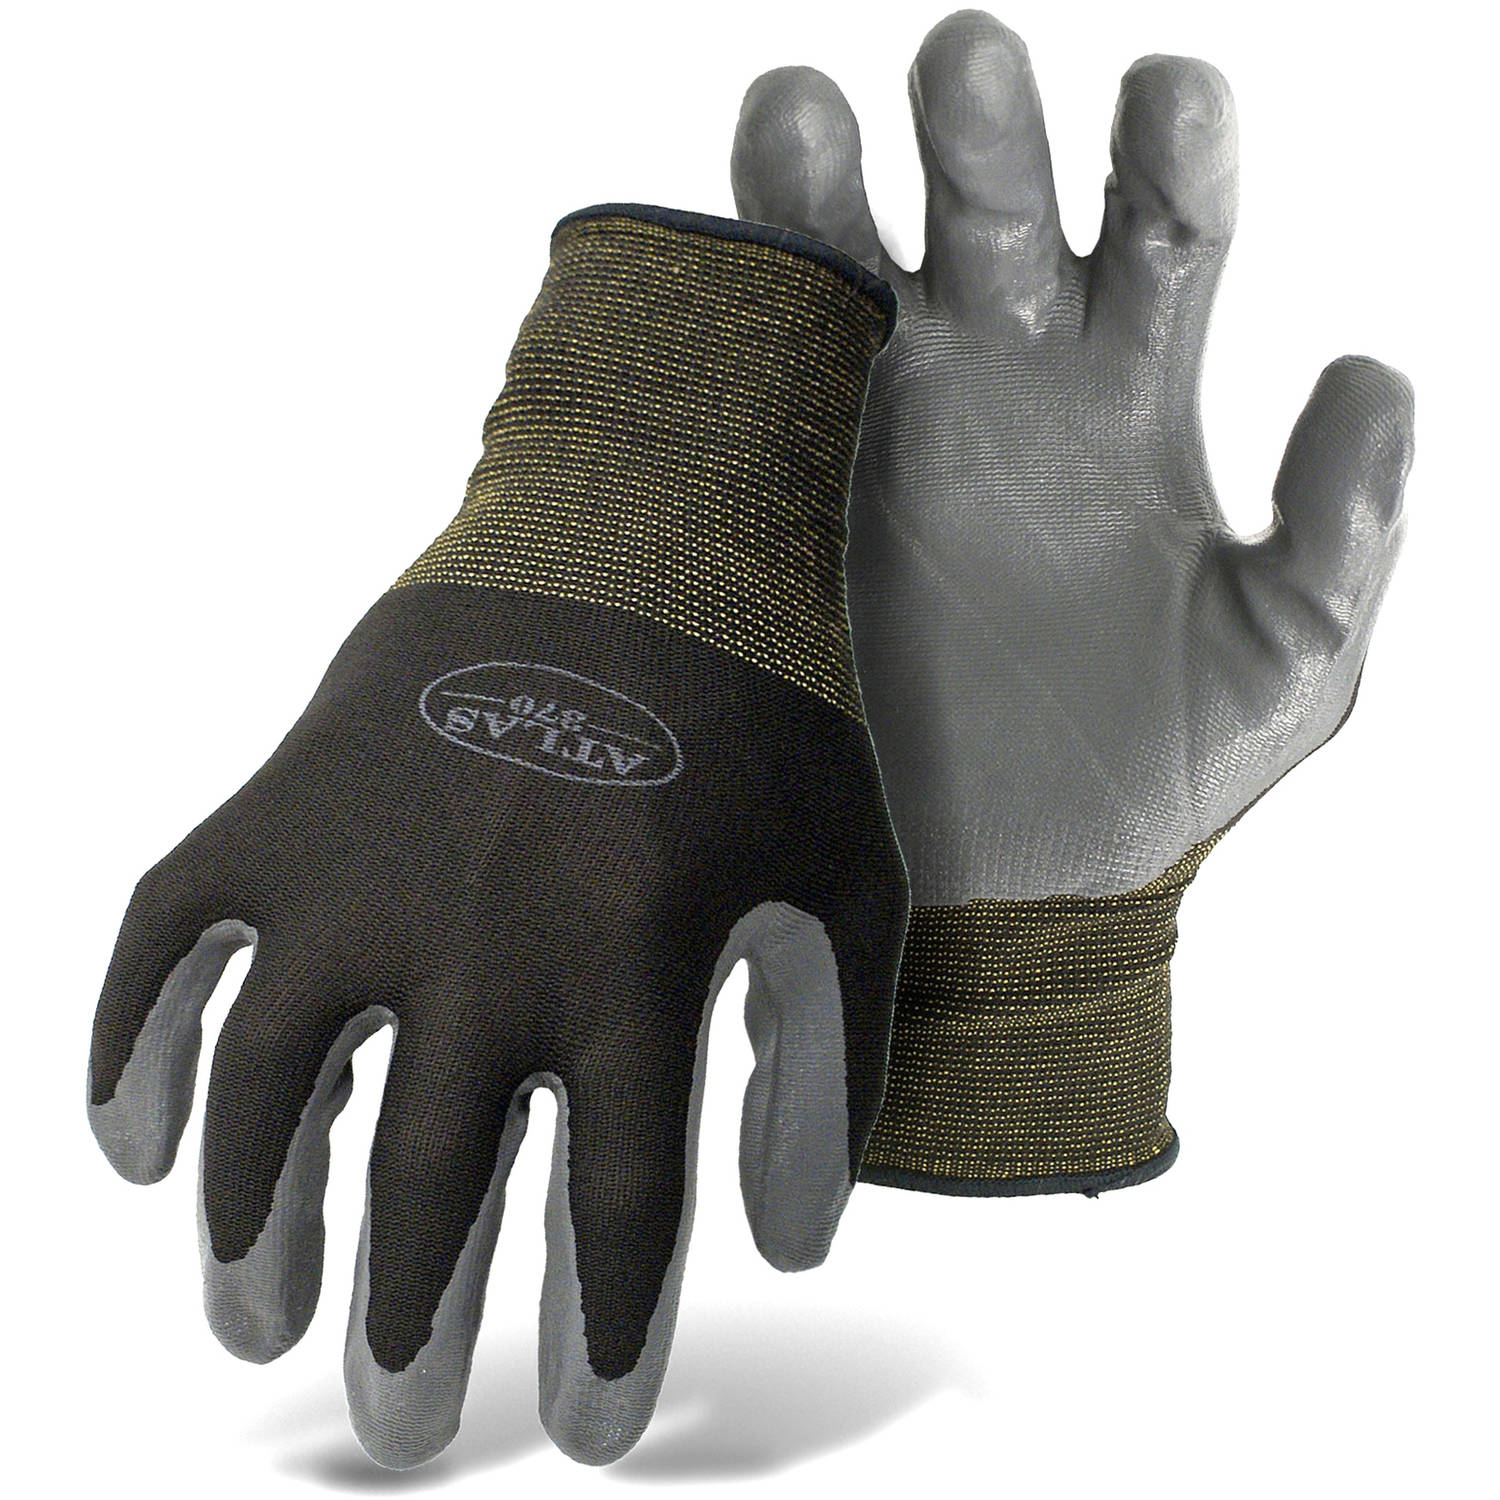 Atlas Glove 8441X Extra-Large Atlas-Fit Nitrile Tough Gloves